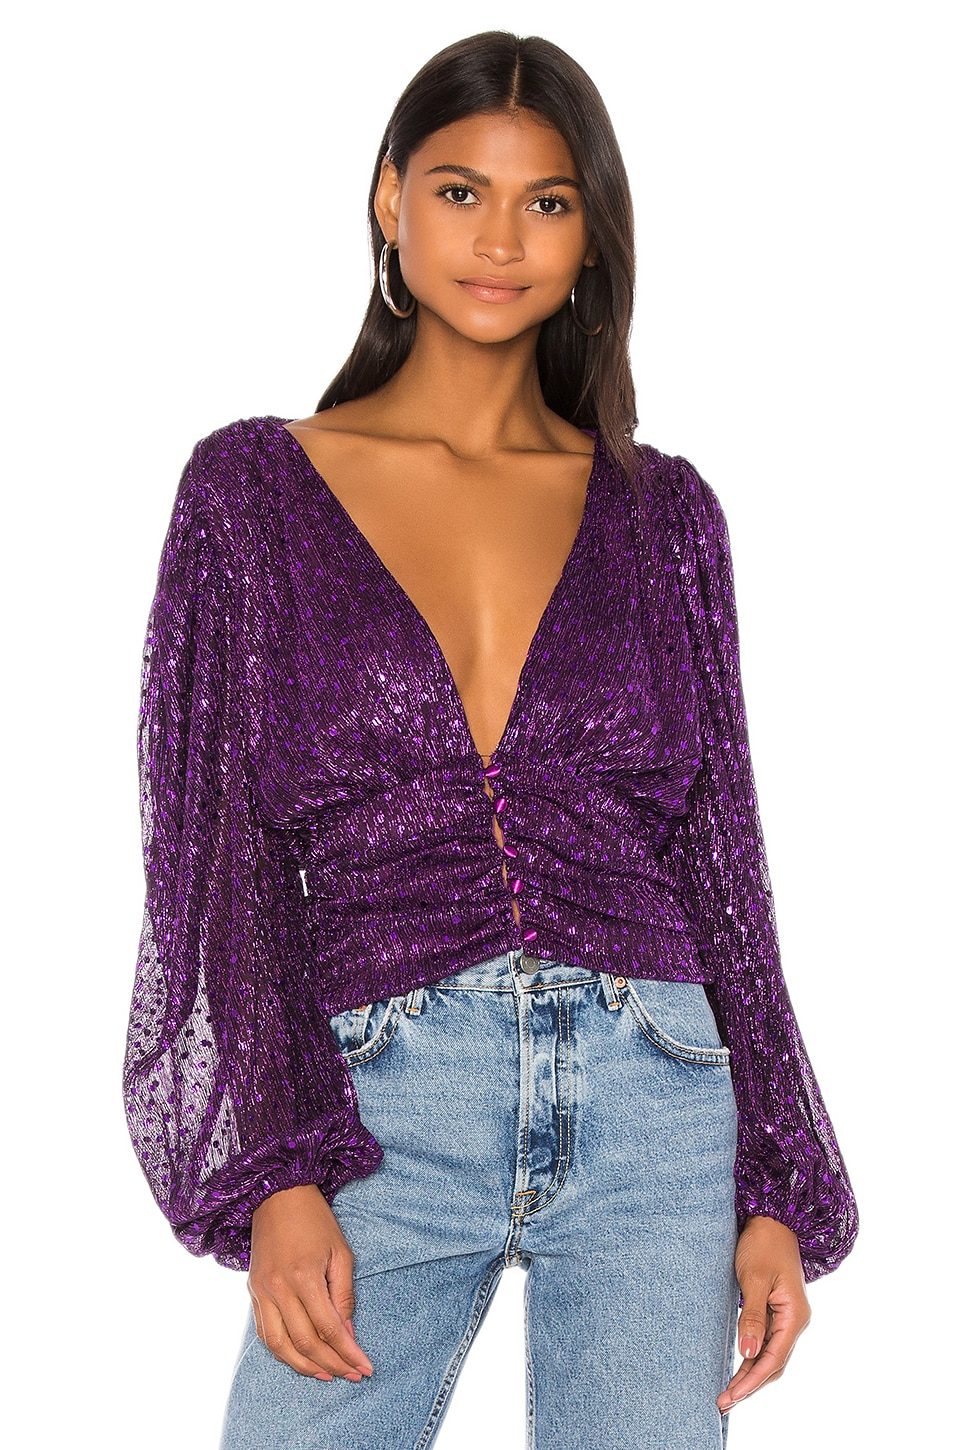 For Love & Lemons Accessories La Villette Cropped Blouse